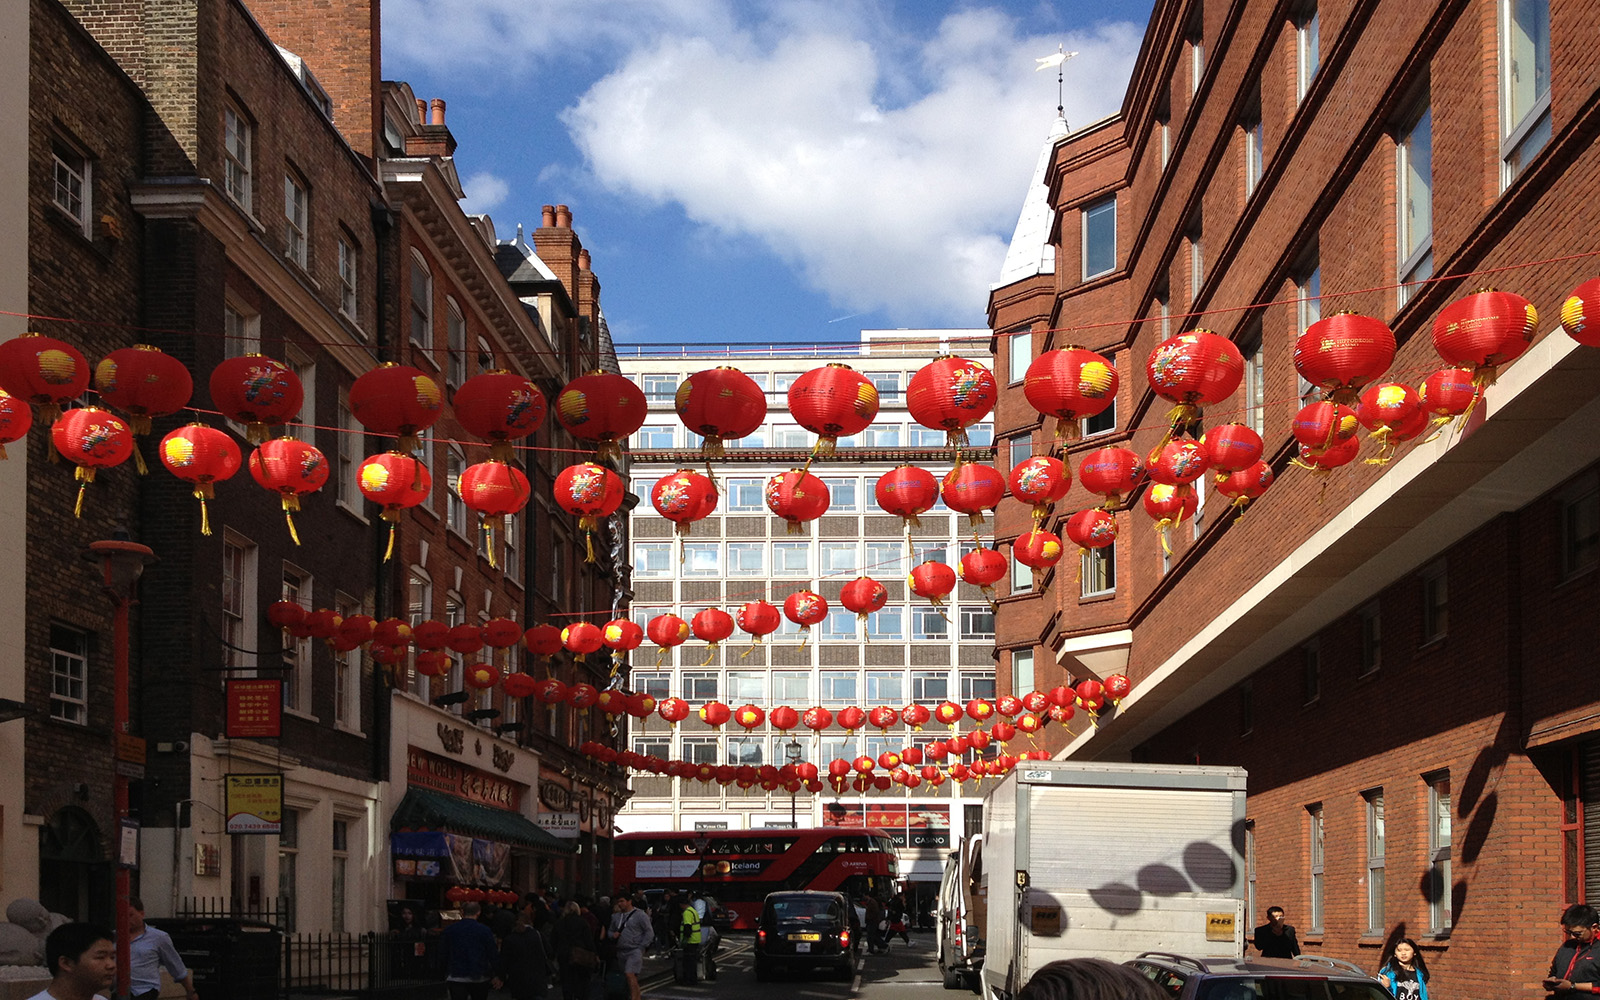 China Town 27 September 2015 1